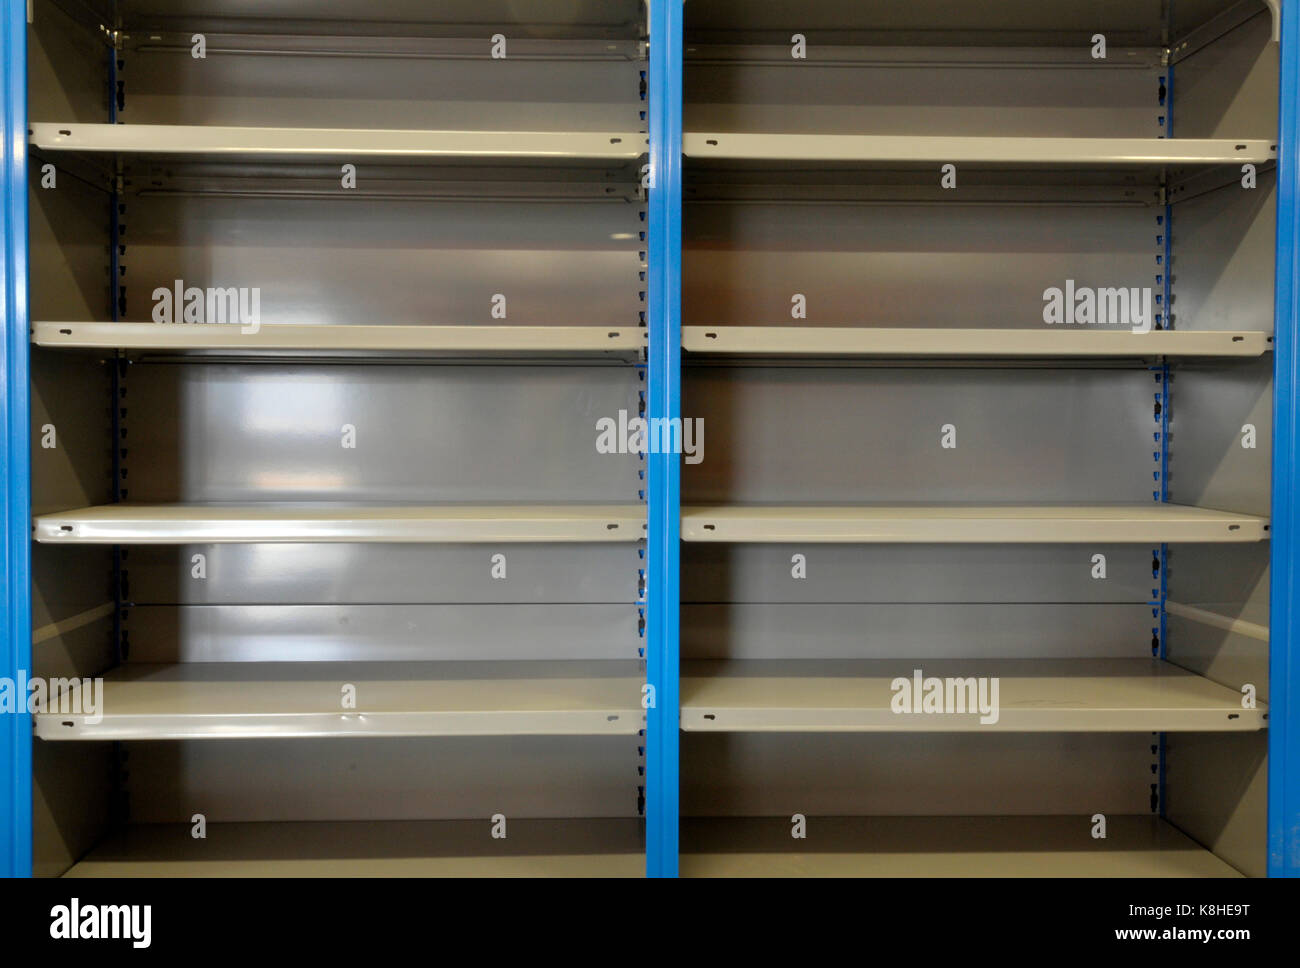 an empty industrial wooden and metal stacking shelving system of shelves at a large industrial warehousing facility - Stock Image